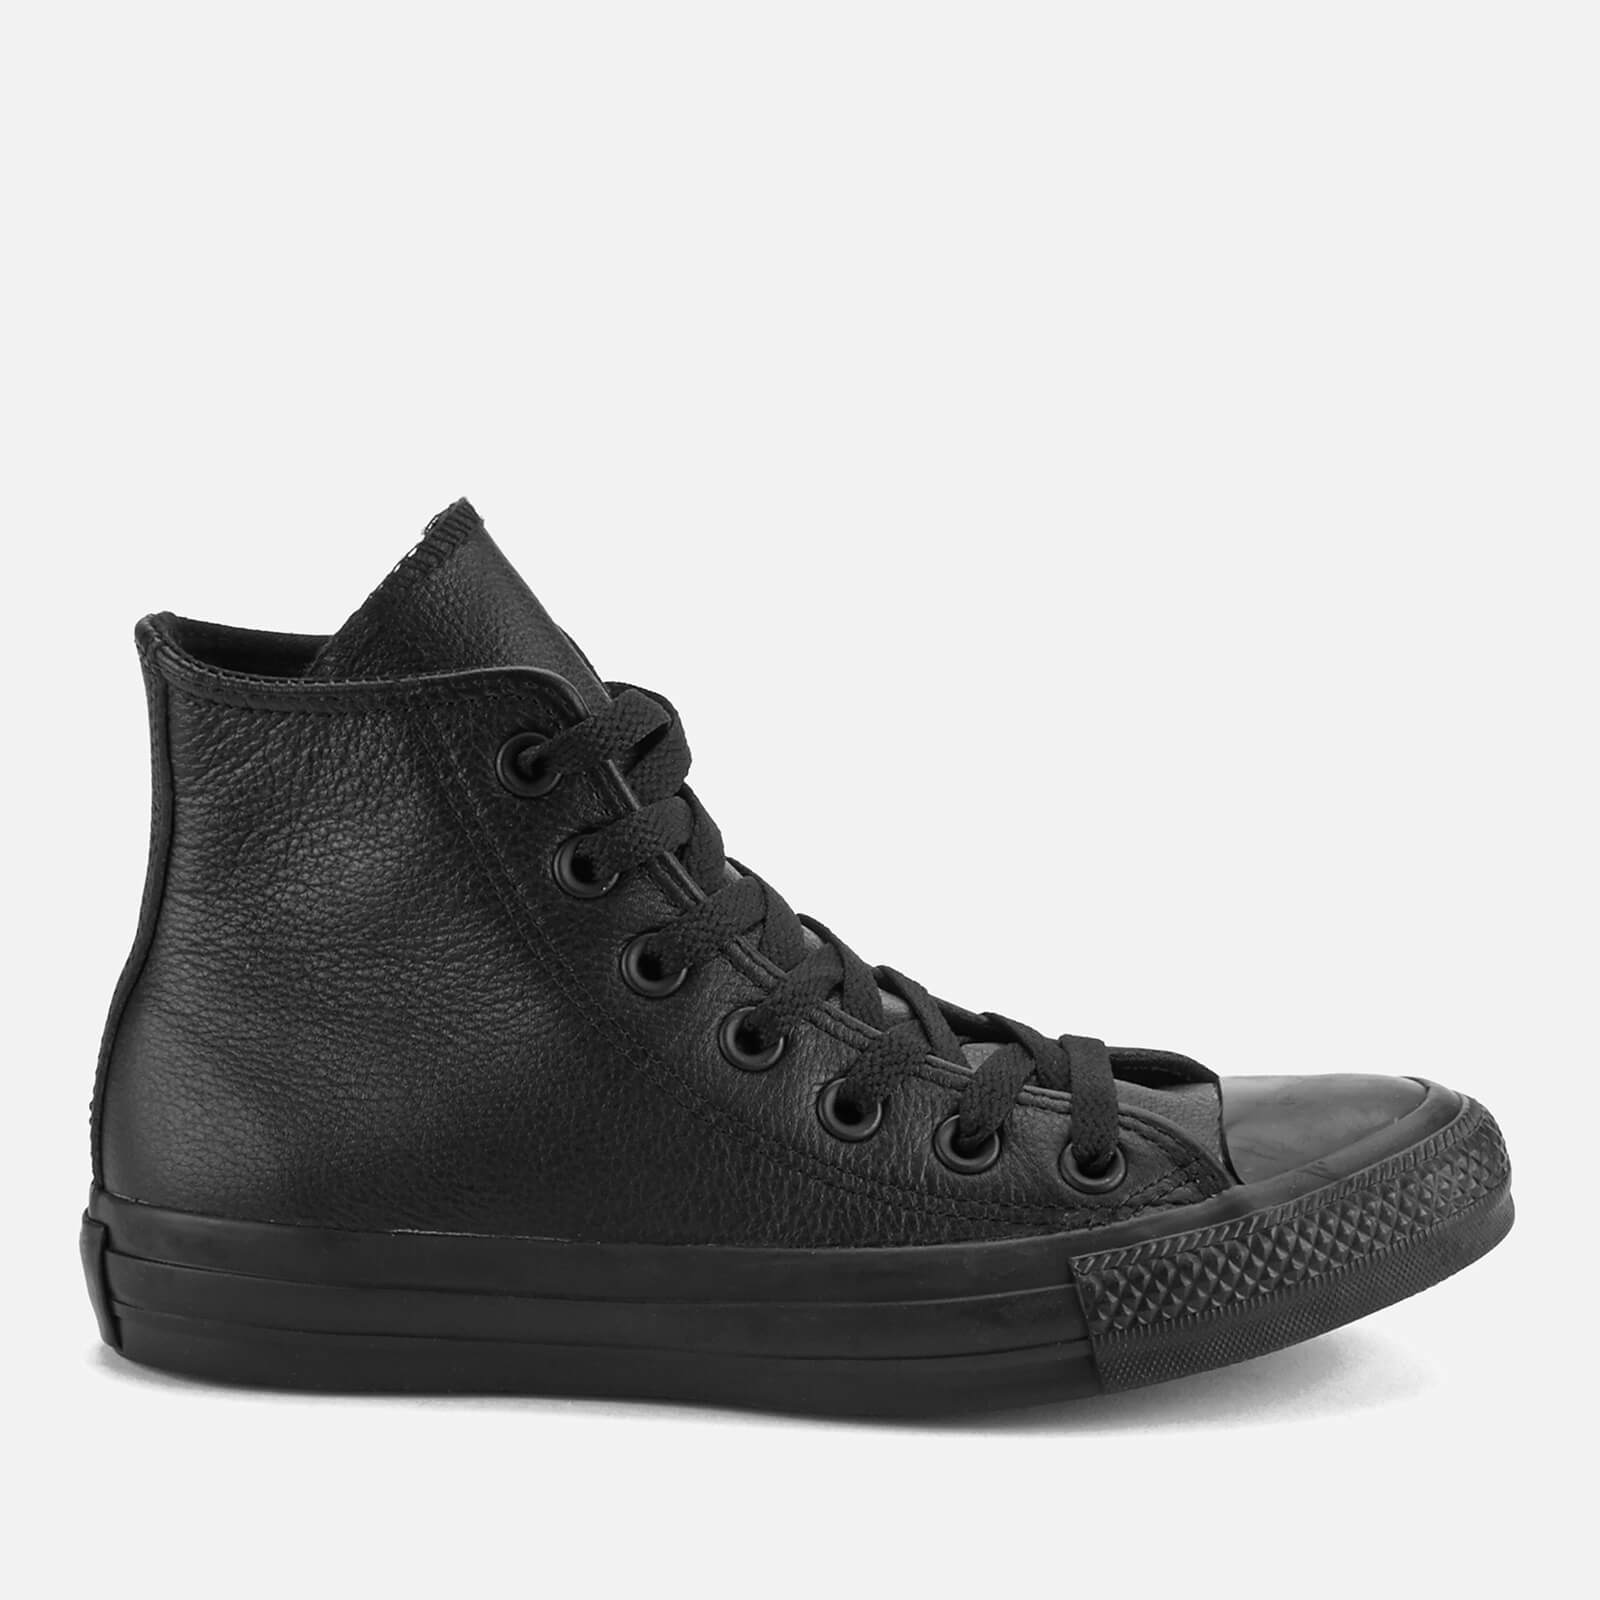 c95f9d49573cc0 Converse Chuck Taylor All Star Leather Hi-Top Trainers - Black Monochrome  Mens Footwear